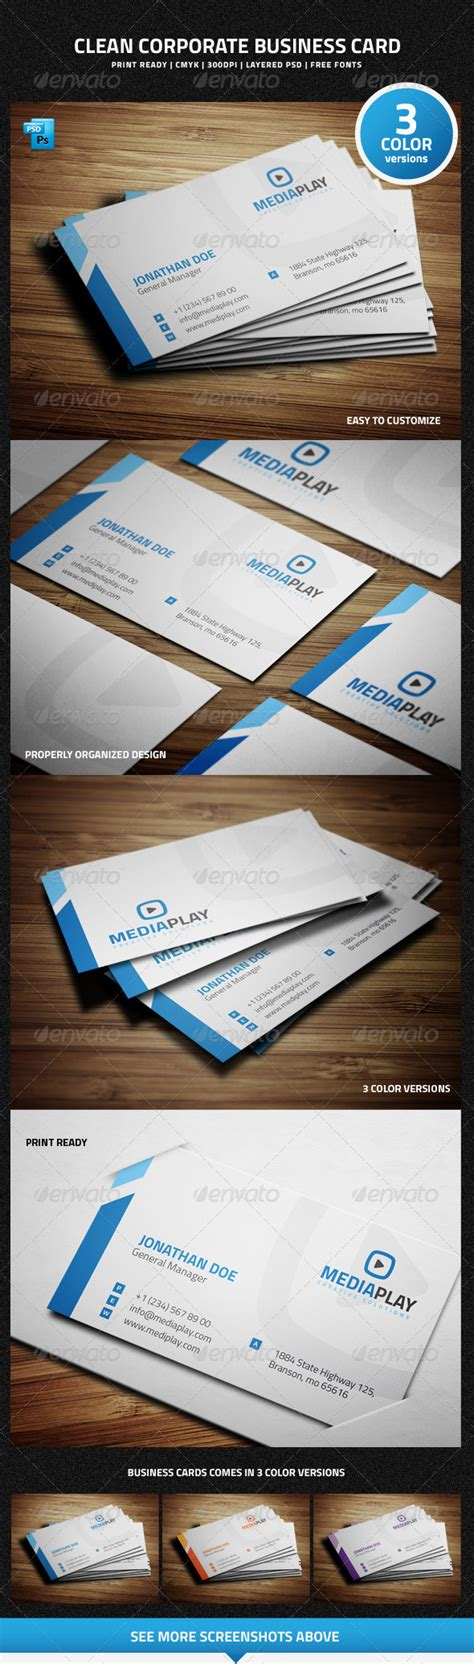 graphicriver corporate business card 6827858 graphicriver clean corporate business card 6767544